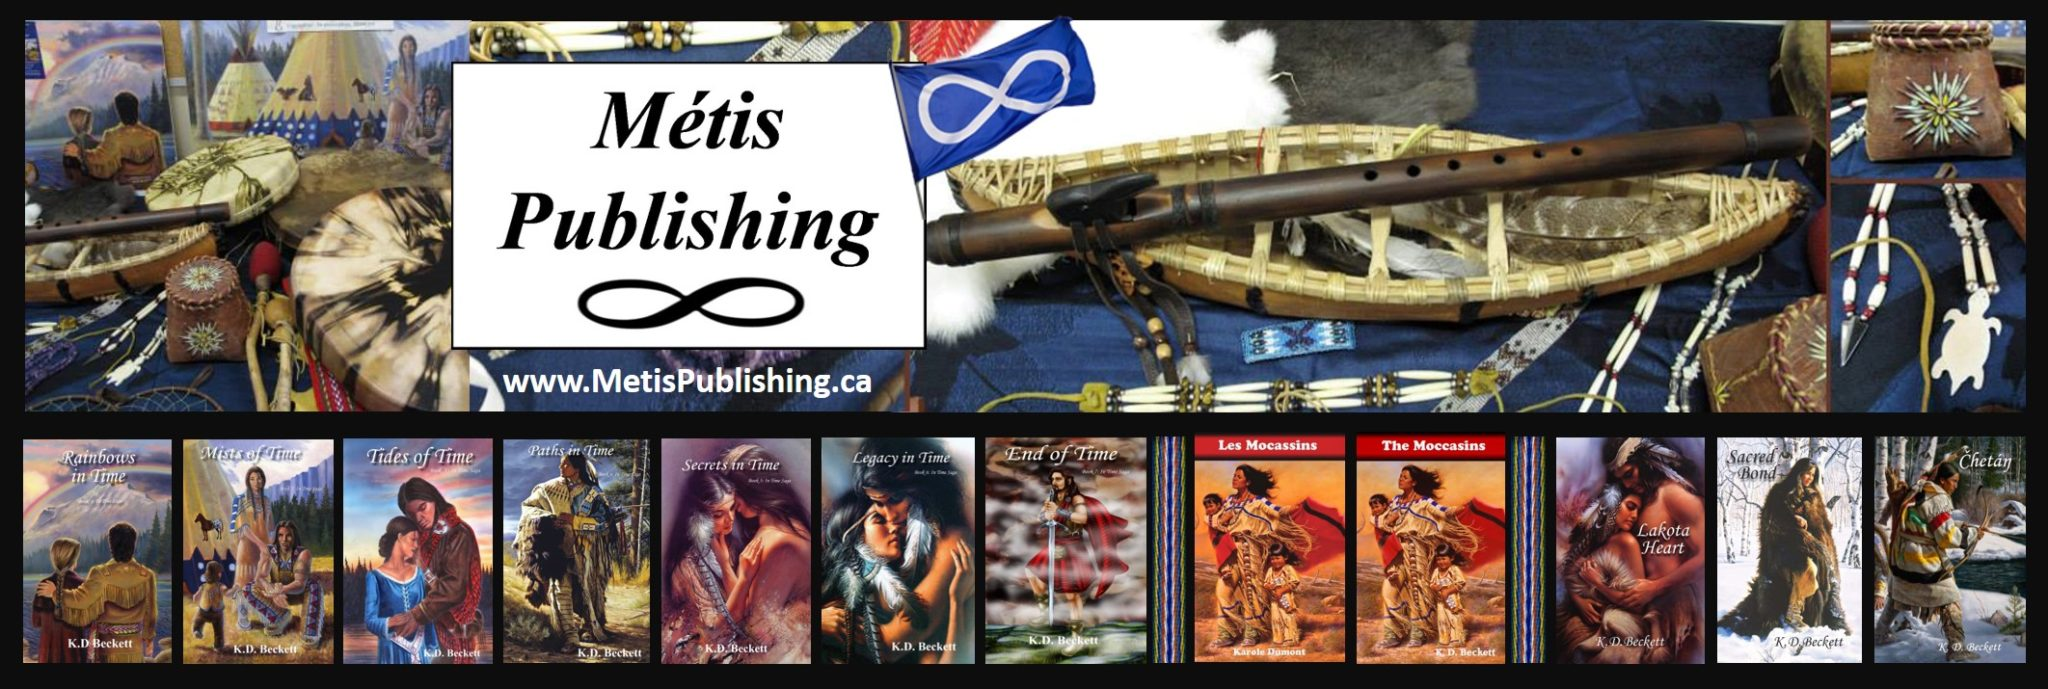 Metis Publishing